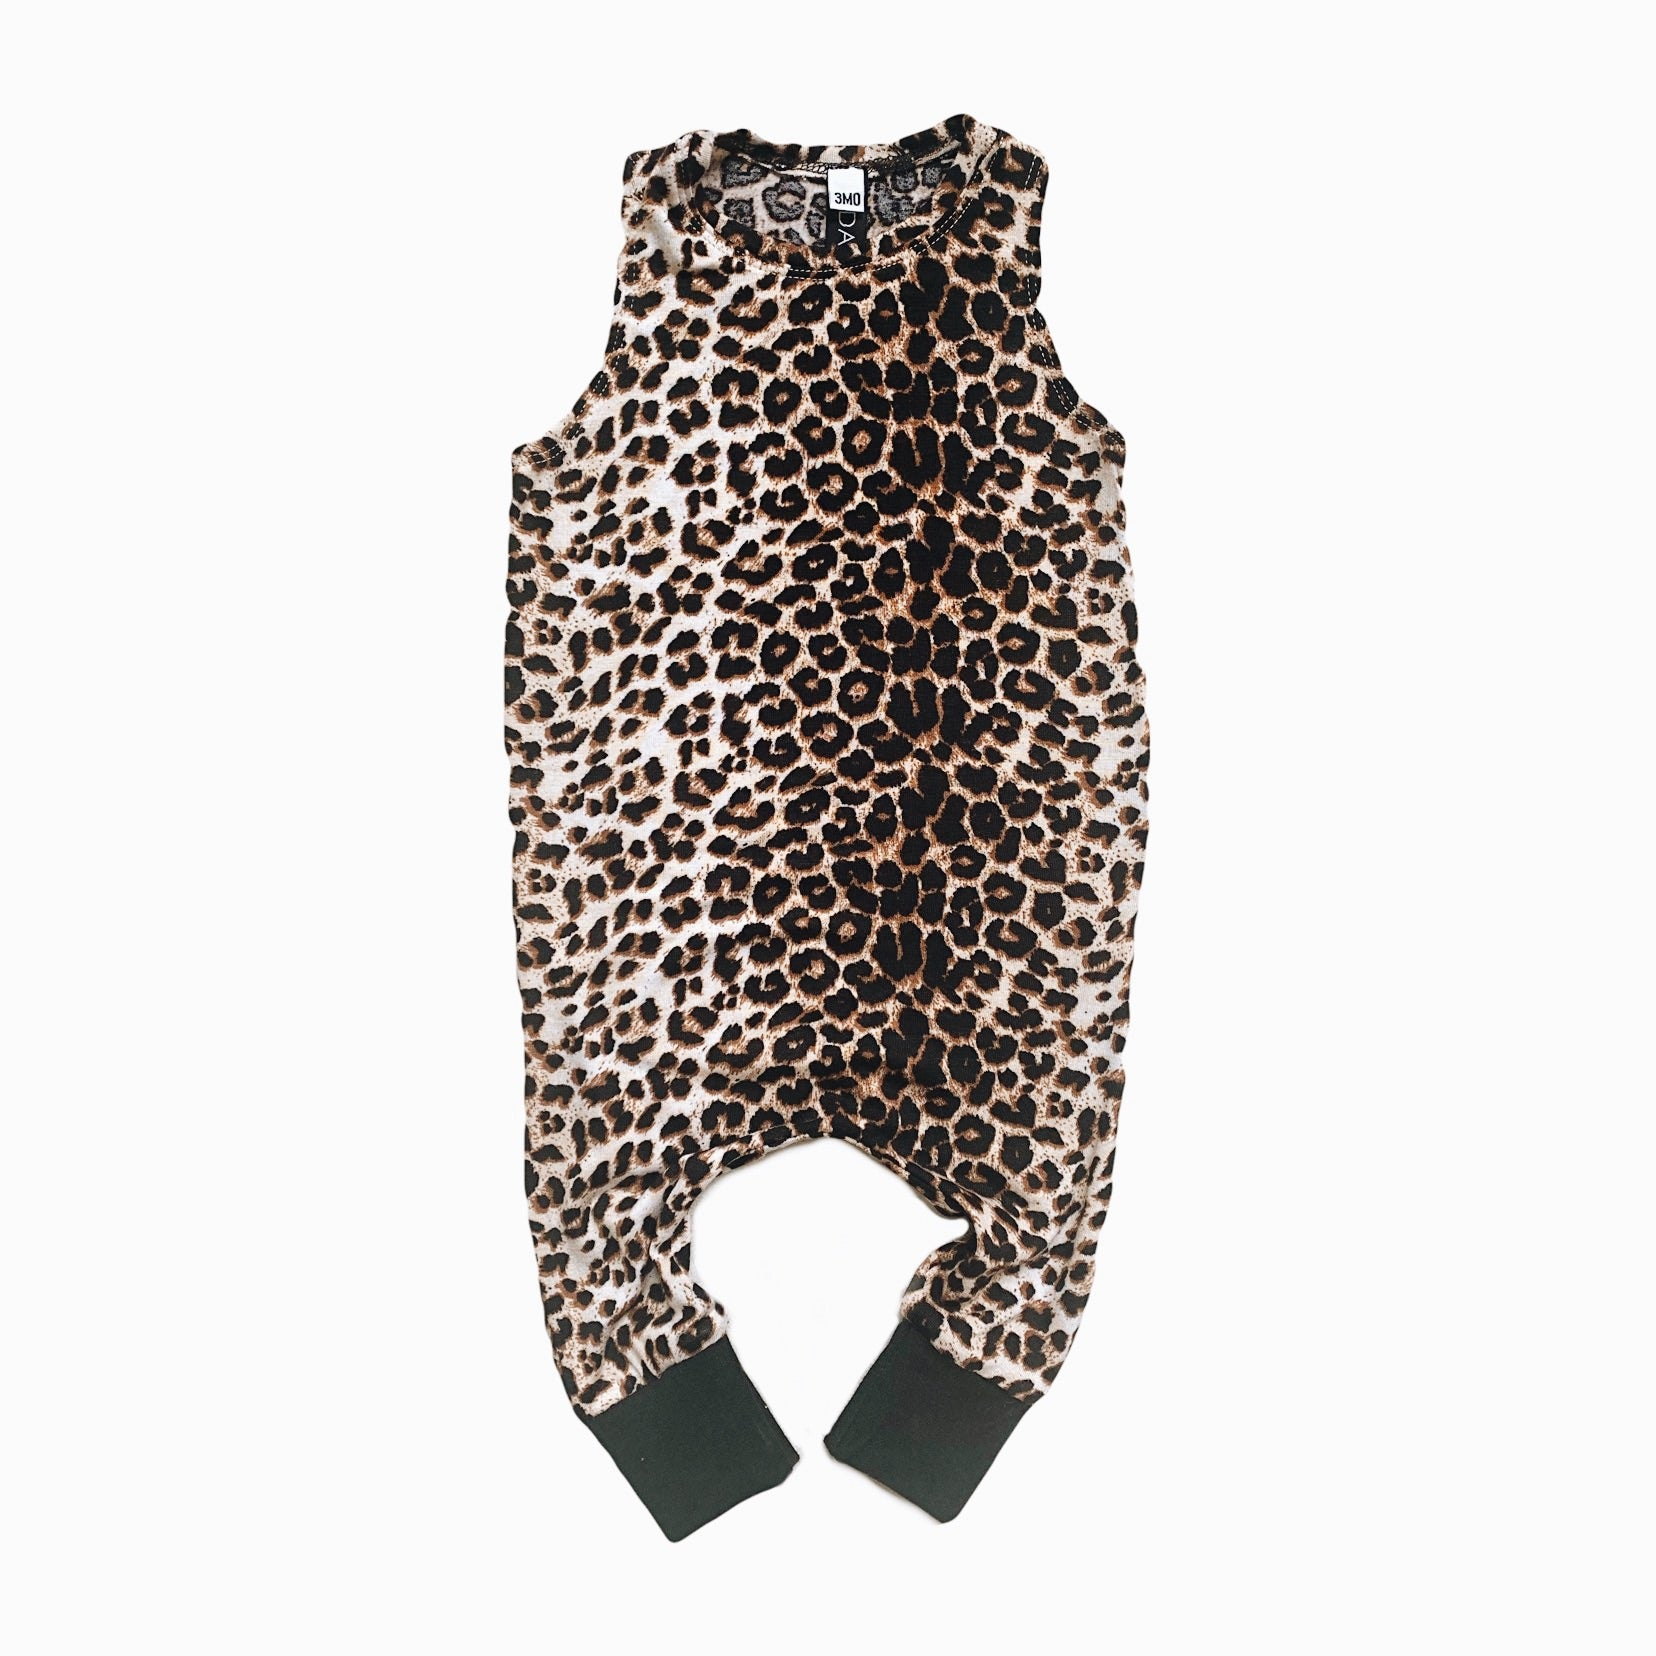 playsuit in wild leopard